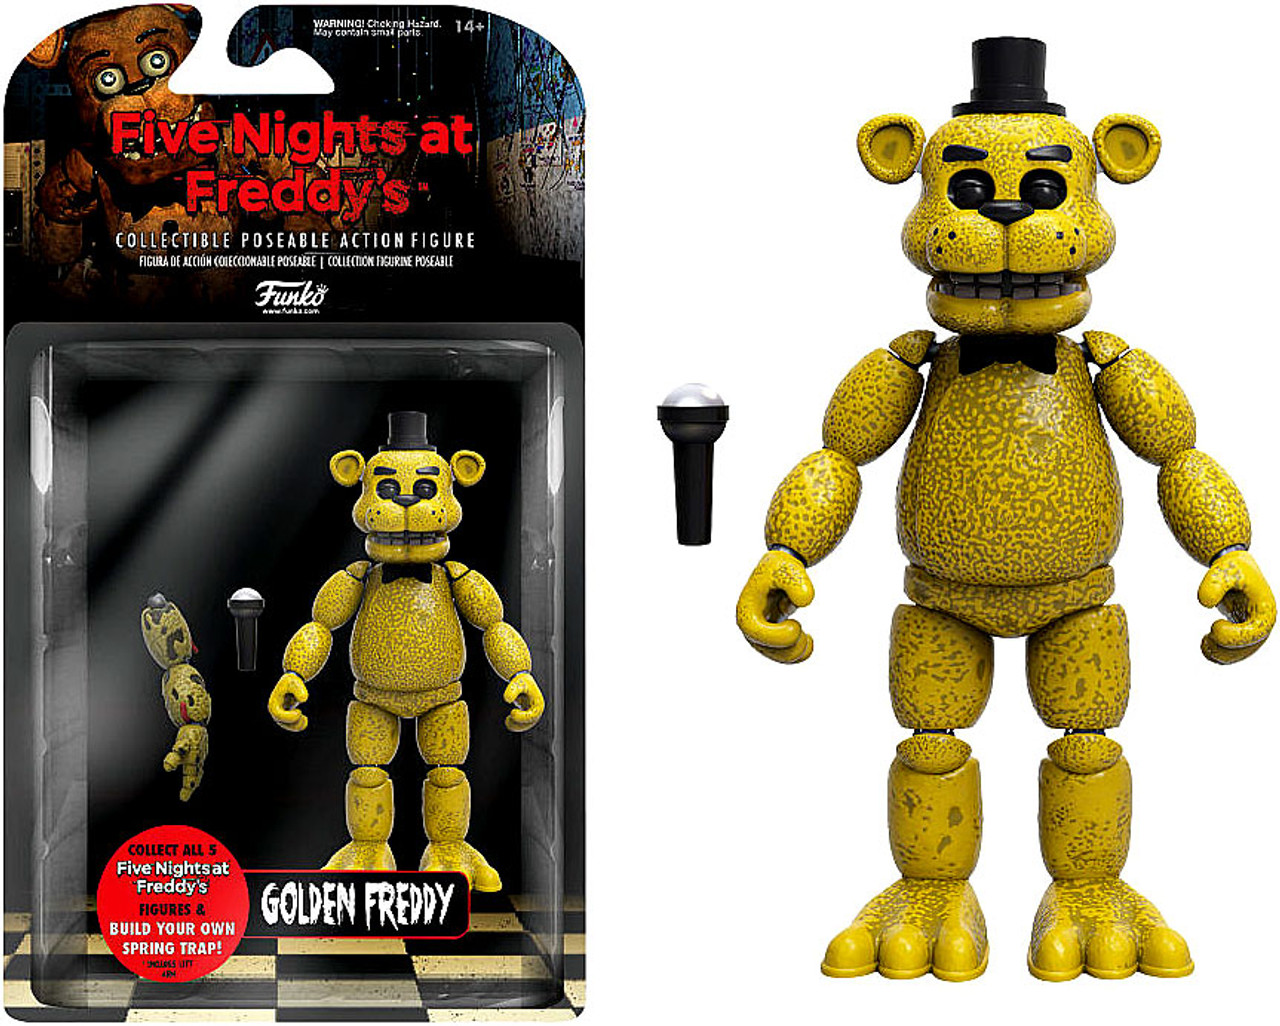 Funko Five Nights At Freddys Golden Freddy Action Figure Build Spring Trap